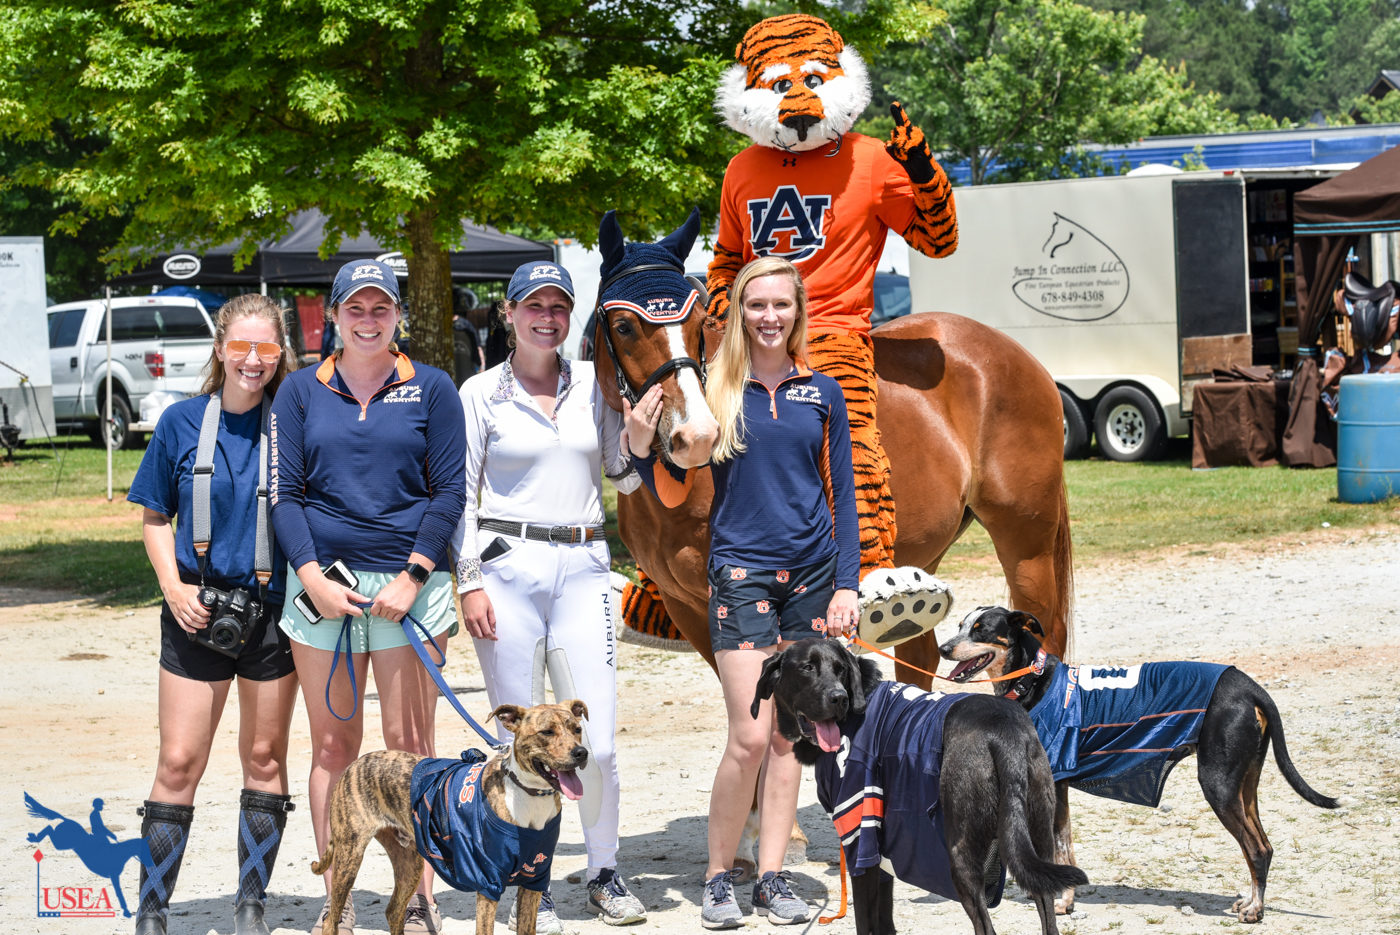 Aubie the Tiger made an appearance at Chattahoochee Hills!